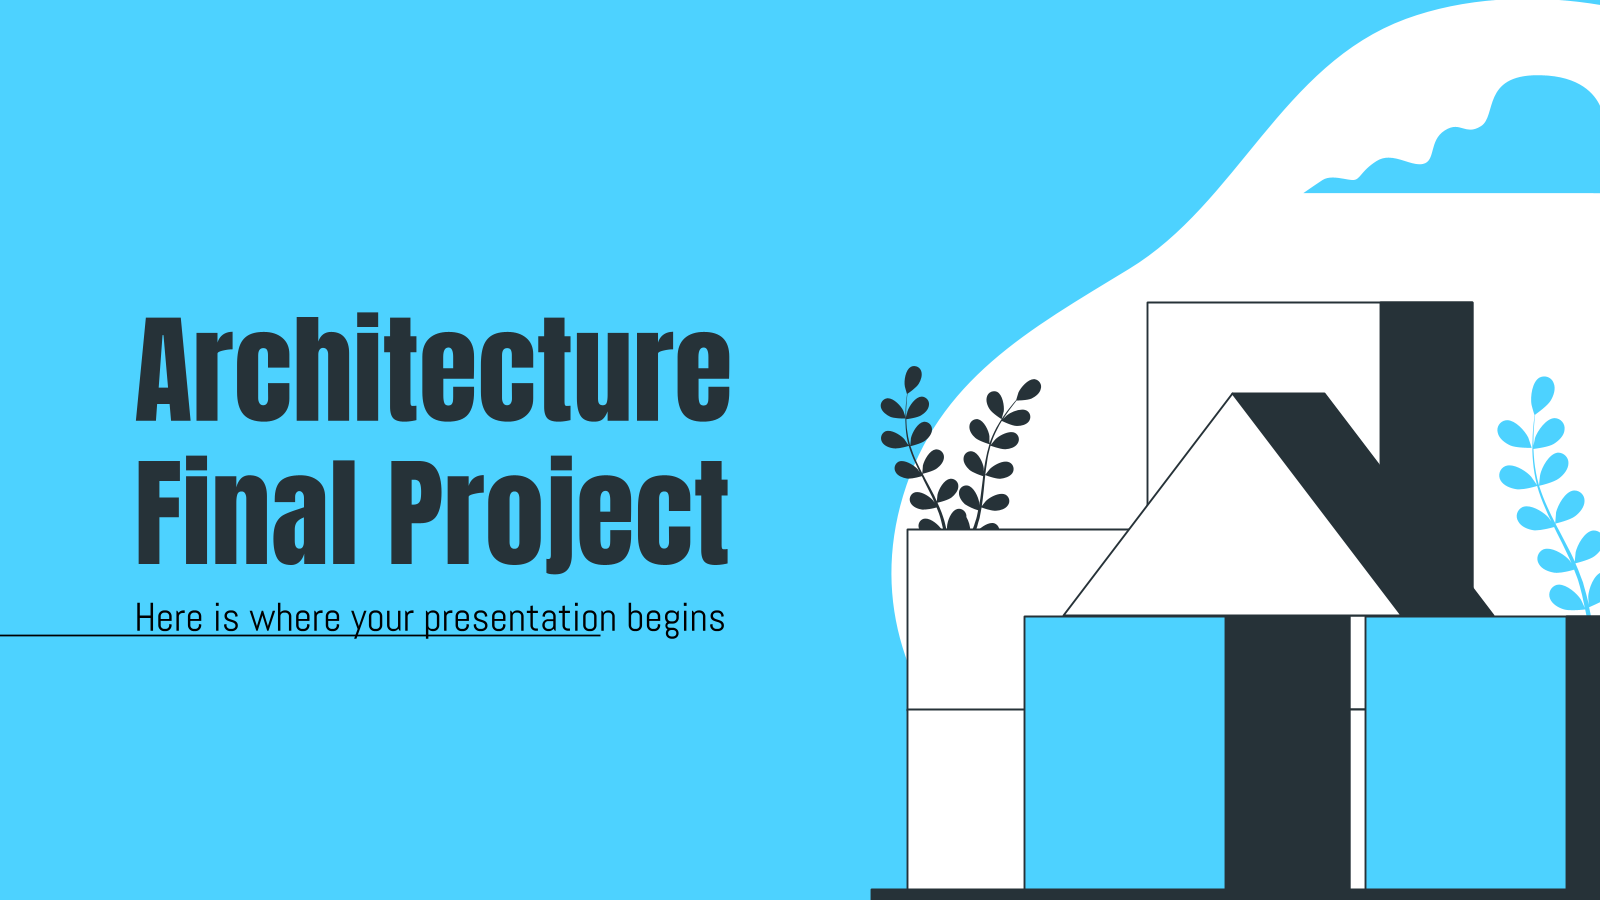 Architecture Final Project presentation template